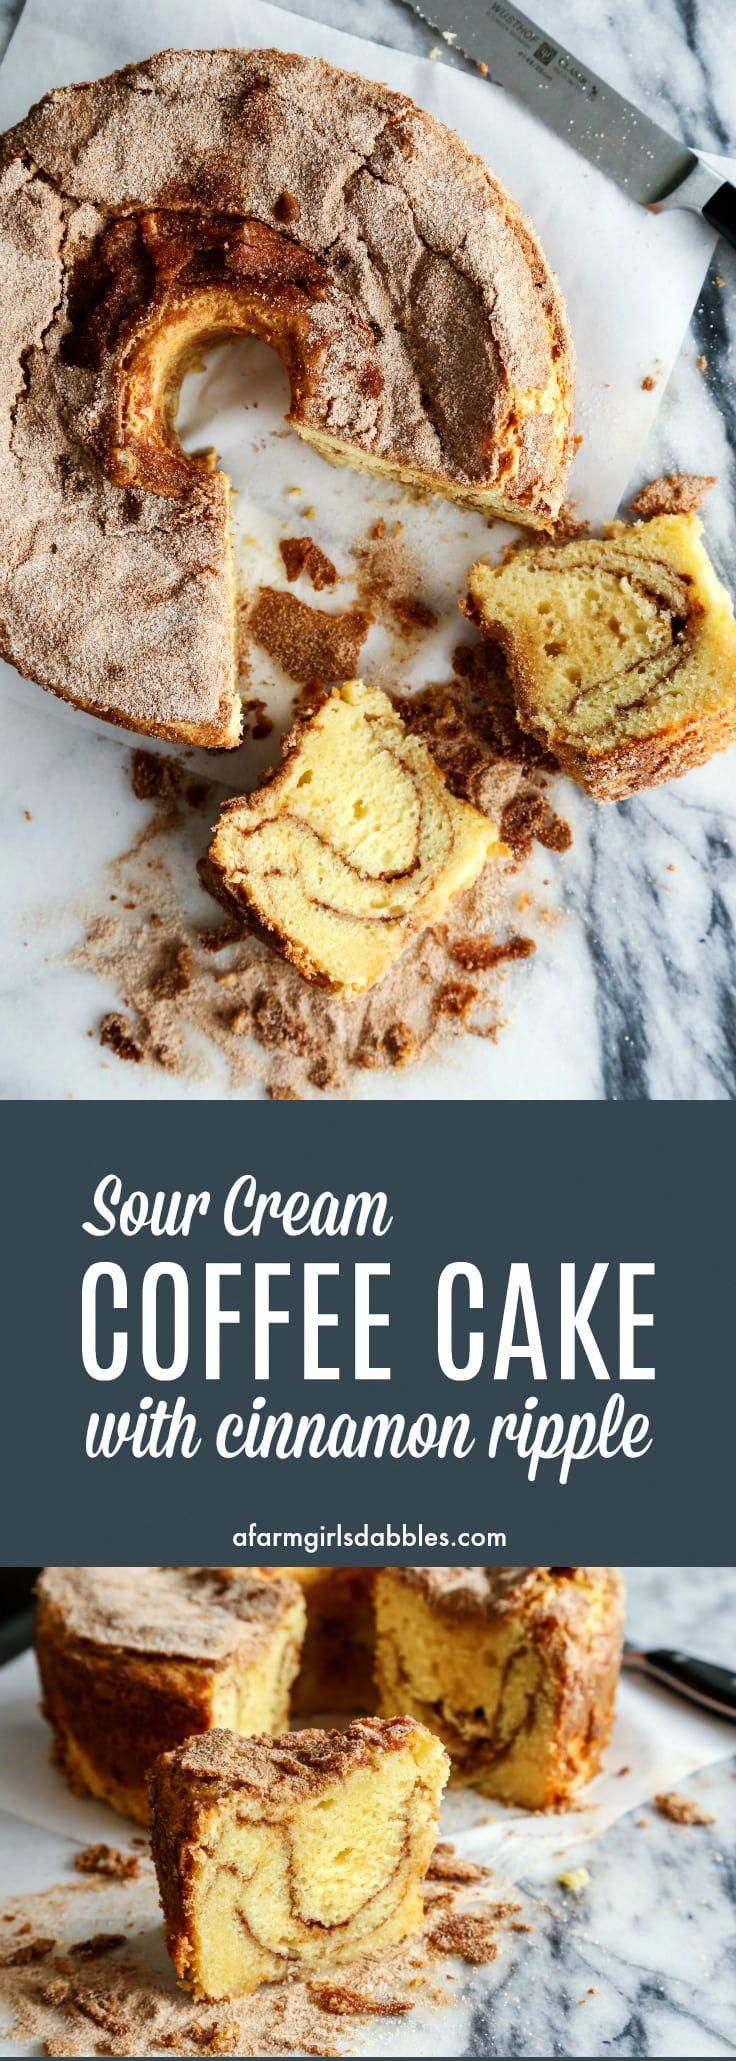 Sour Cream Coffee Cake with Cinnamon Ripple from